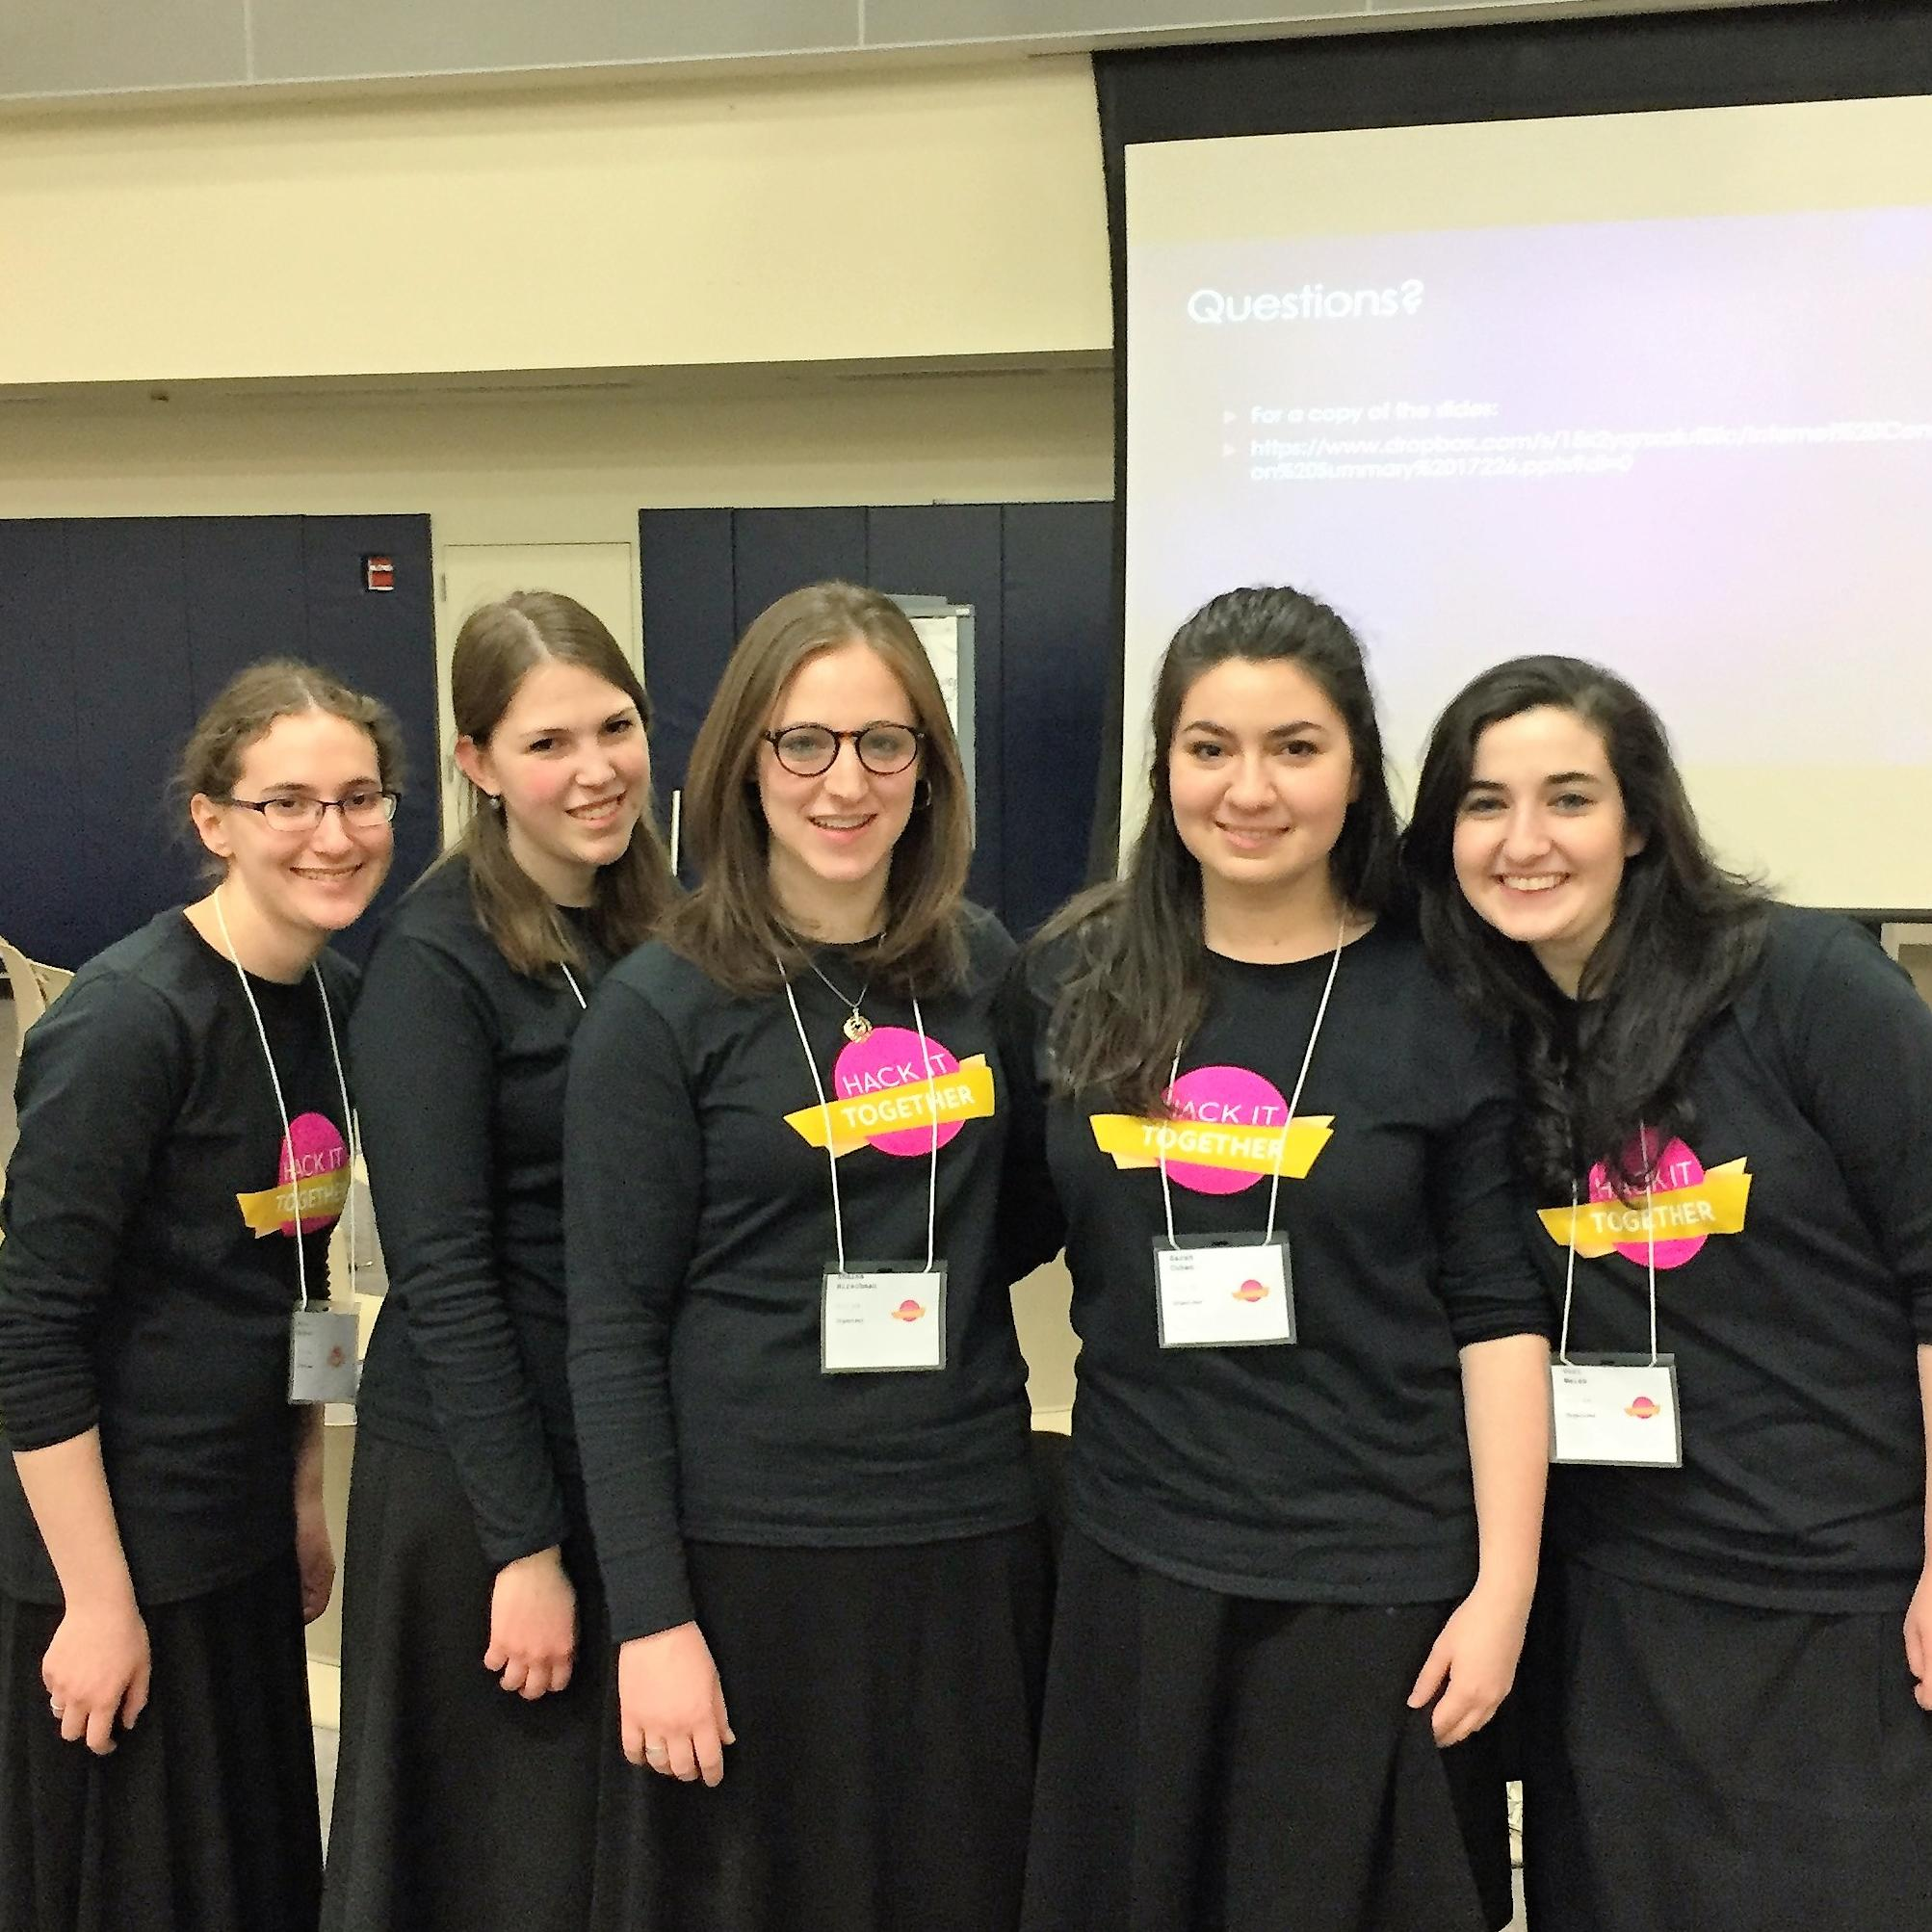 These LCW students organized LCW's second annual Hackathon, Hack It Together. Close to a hundred college students from across NY and NJ took part in the event, held on February 24.